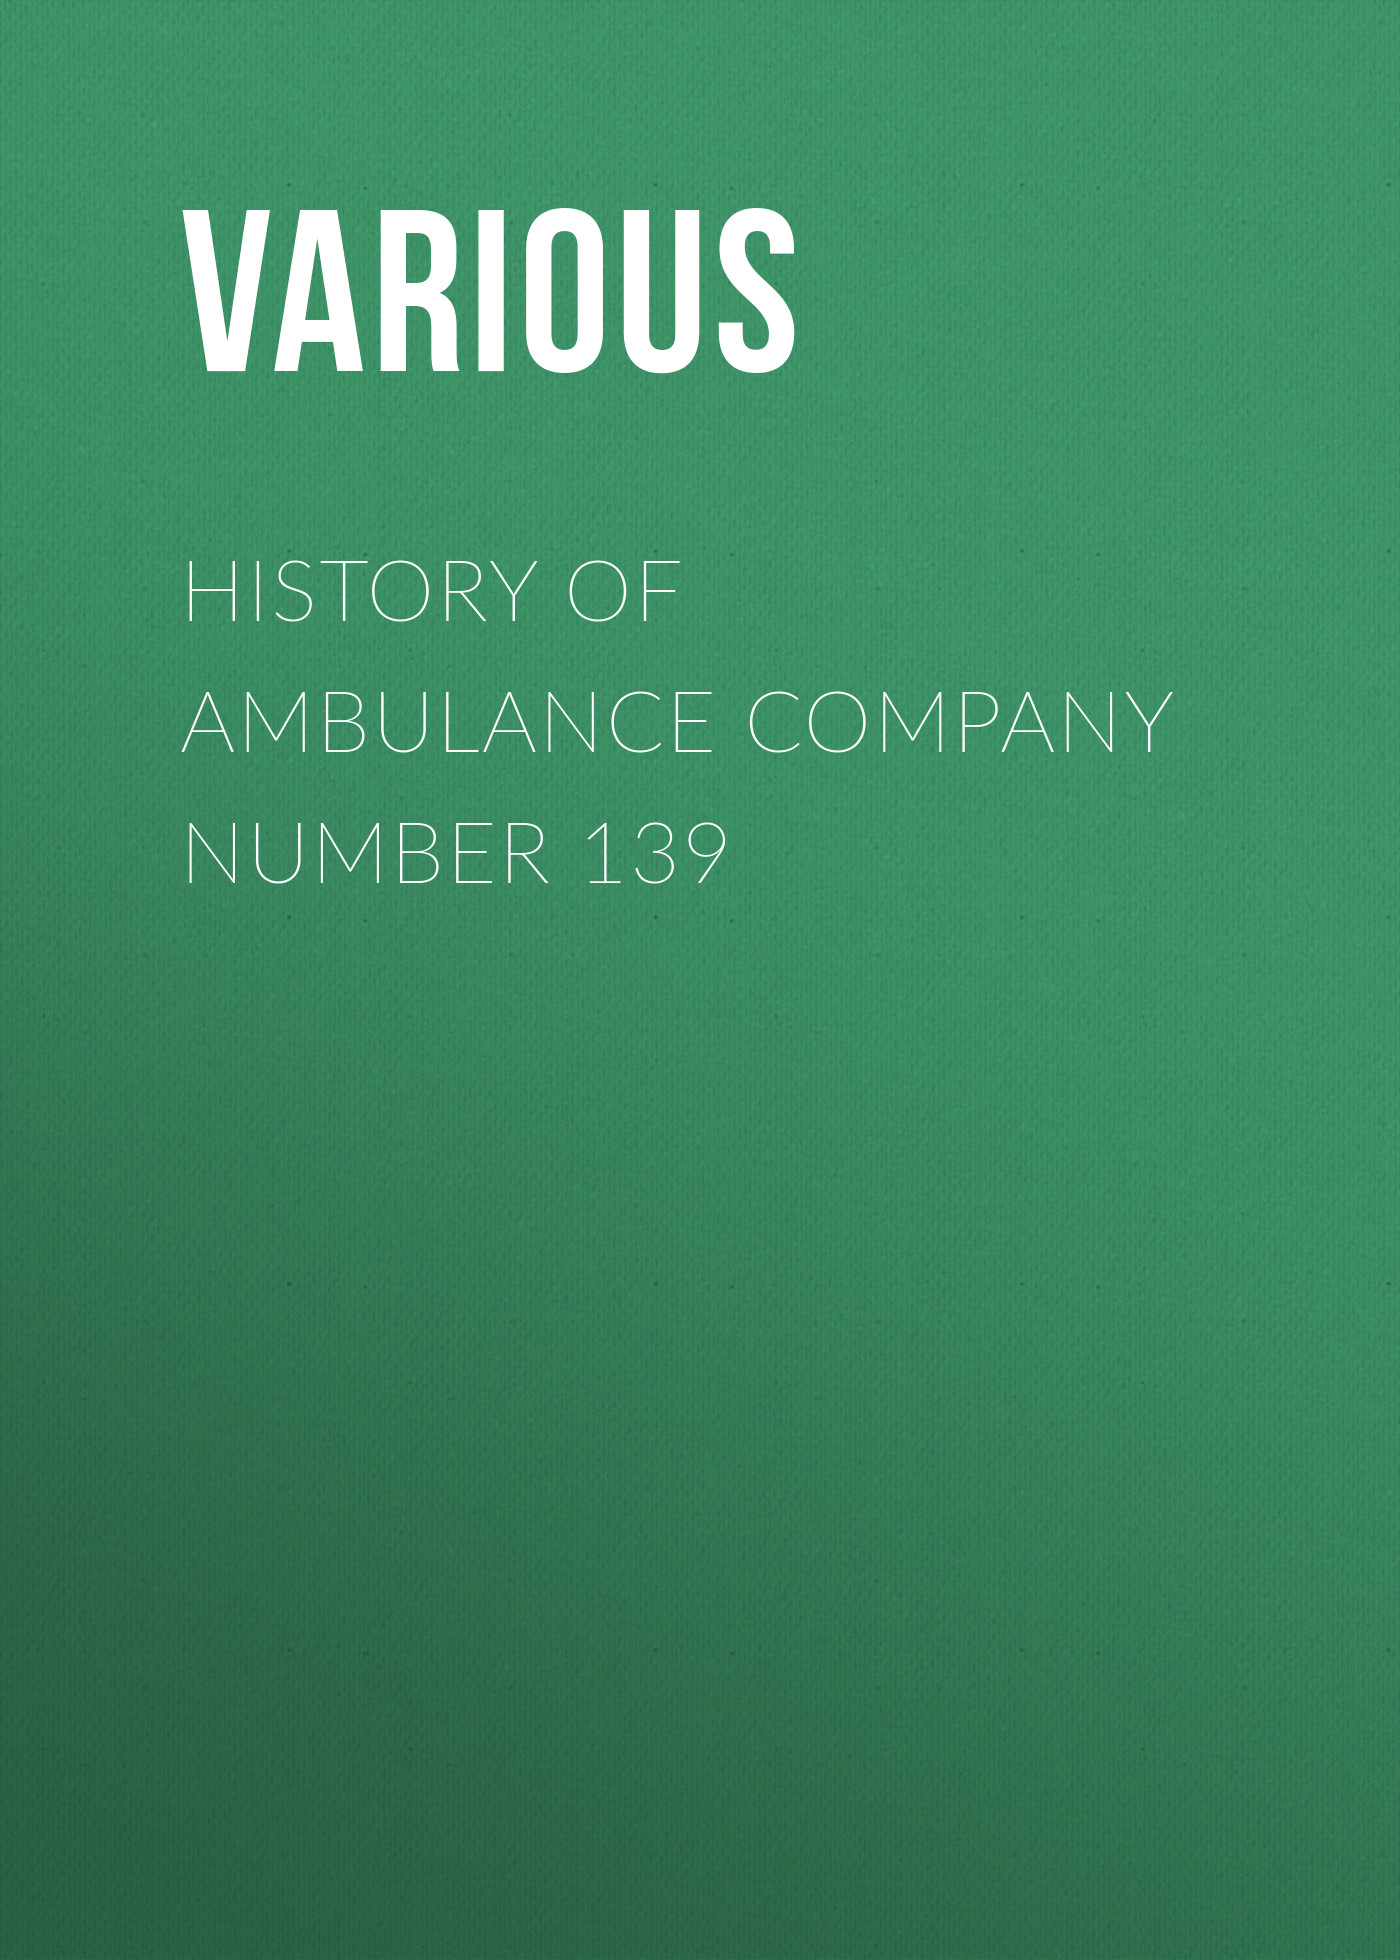 Various History of Ambulance Company Number 139